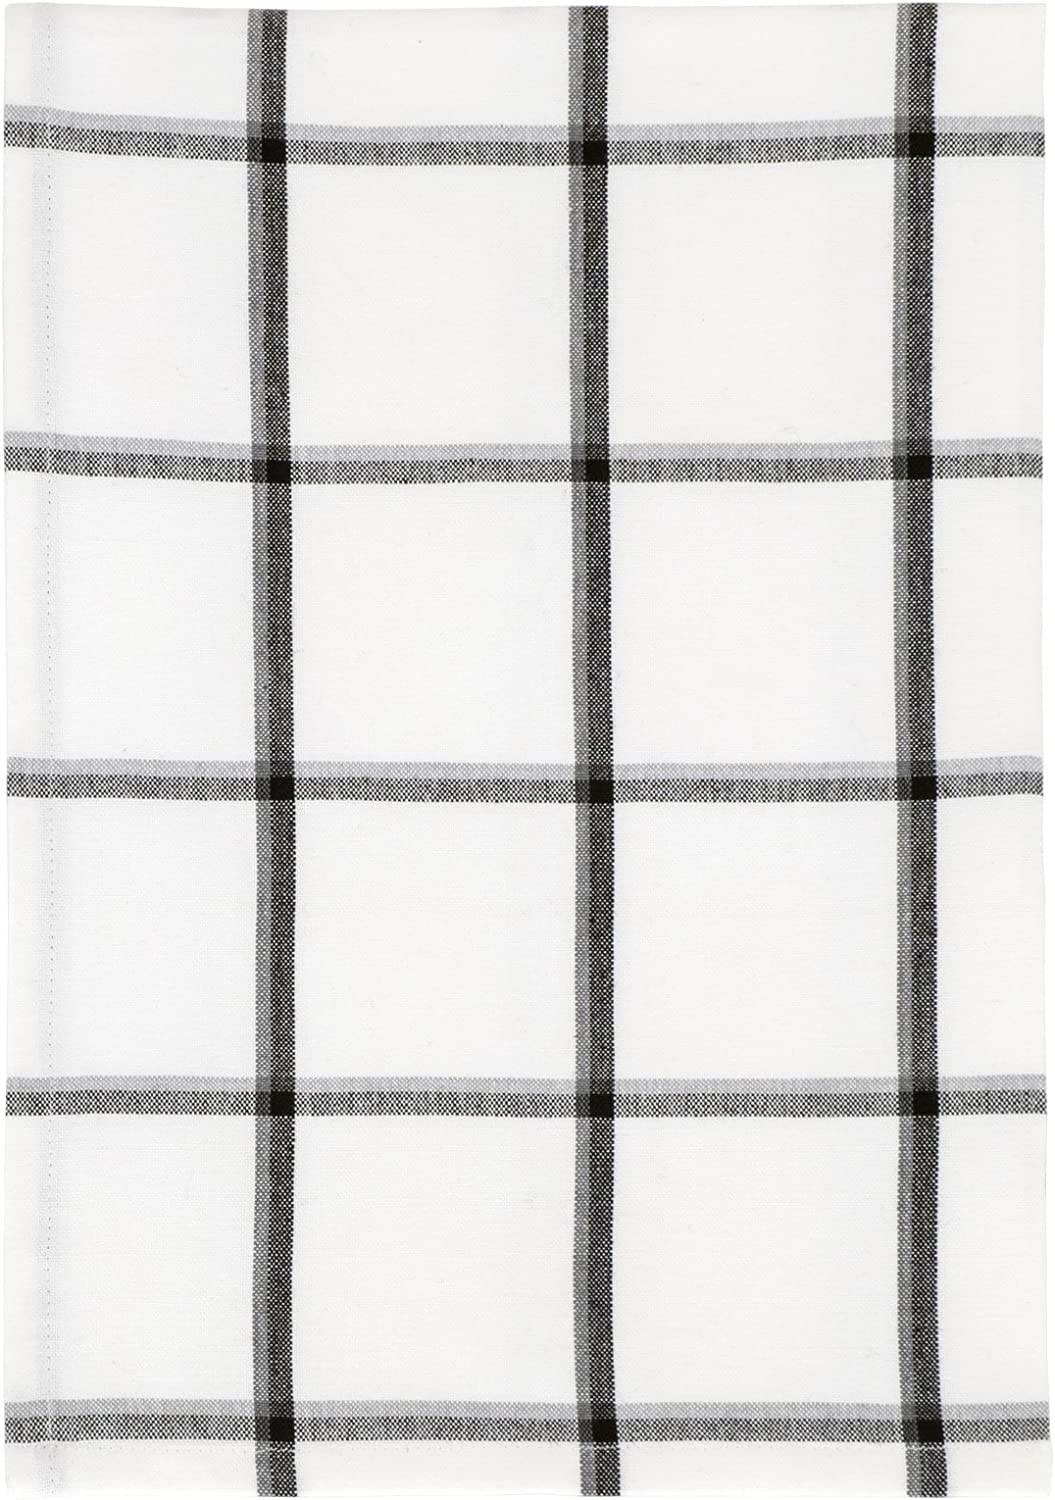 Traders and Company Overseas parallel import regular item Louisville-Jefferson County Mall 100% Cotton White 20